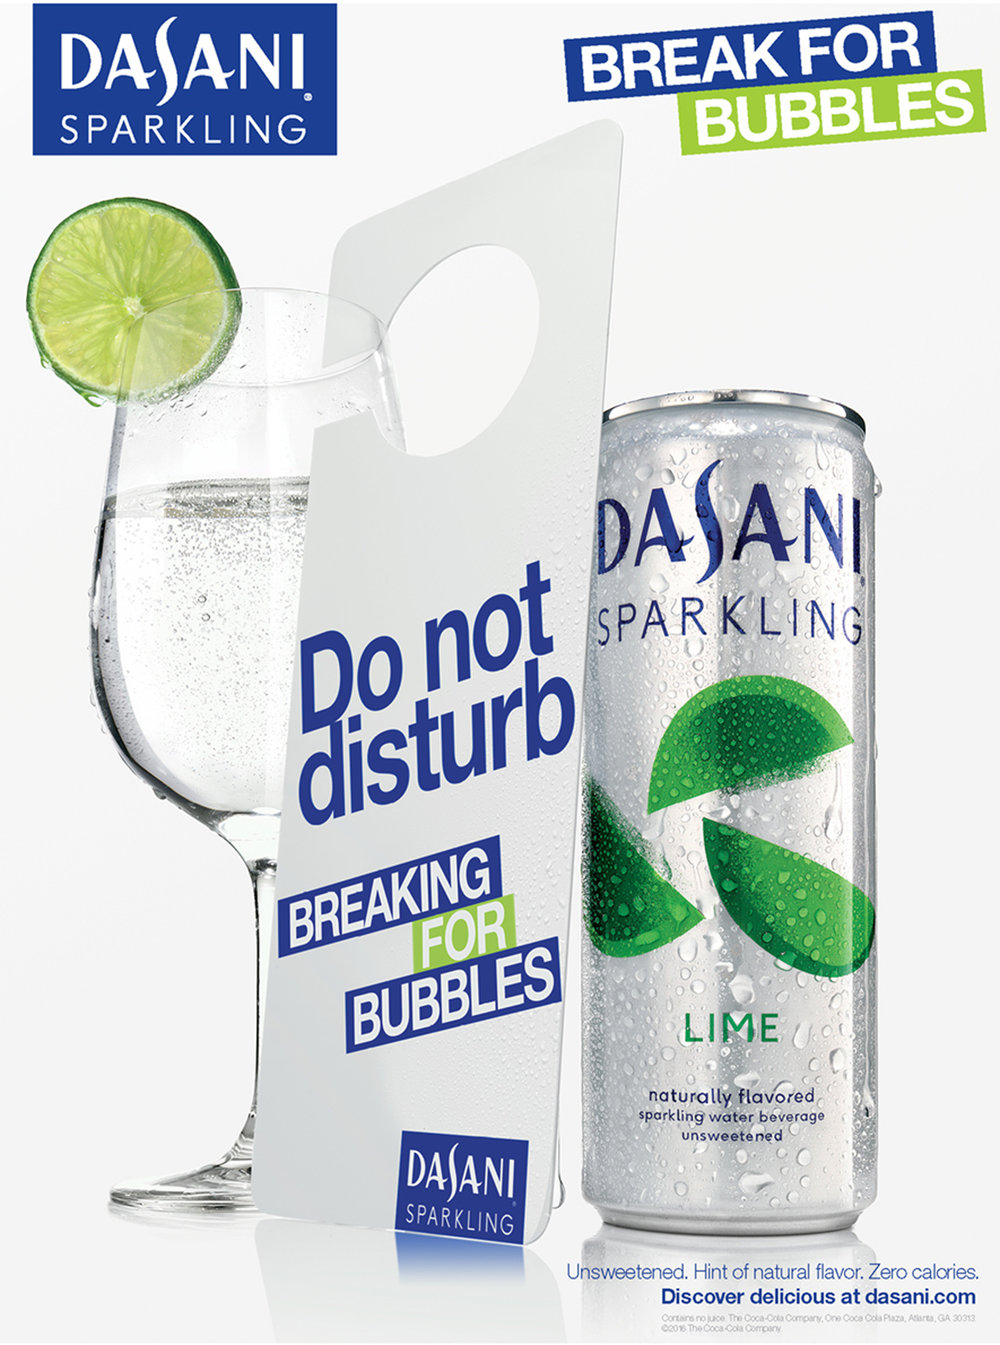 051816 Sparkling Do Not Disturb 16-170-012.jpg